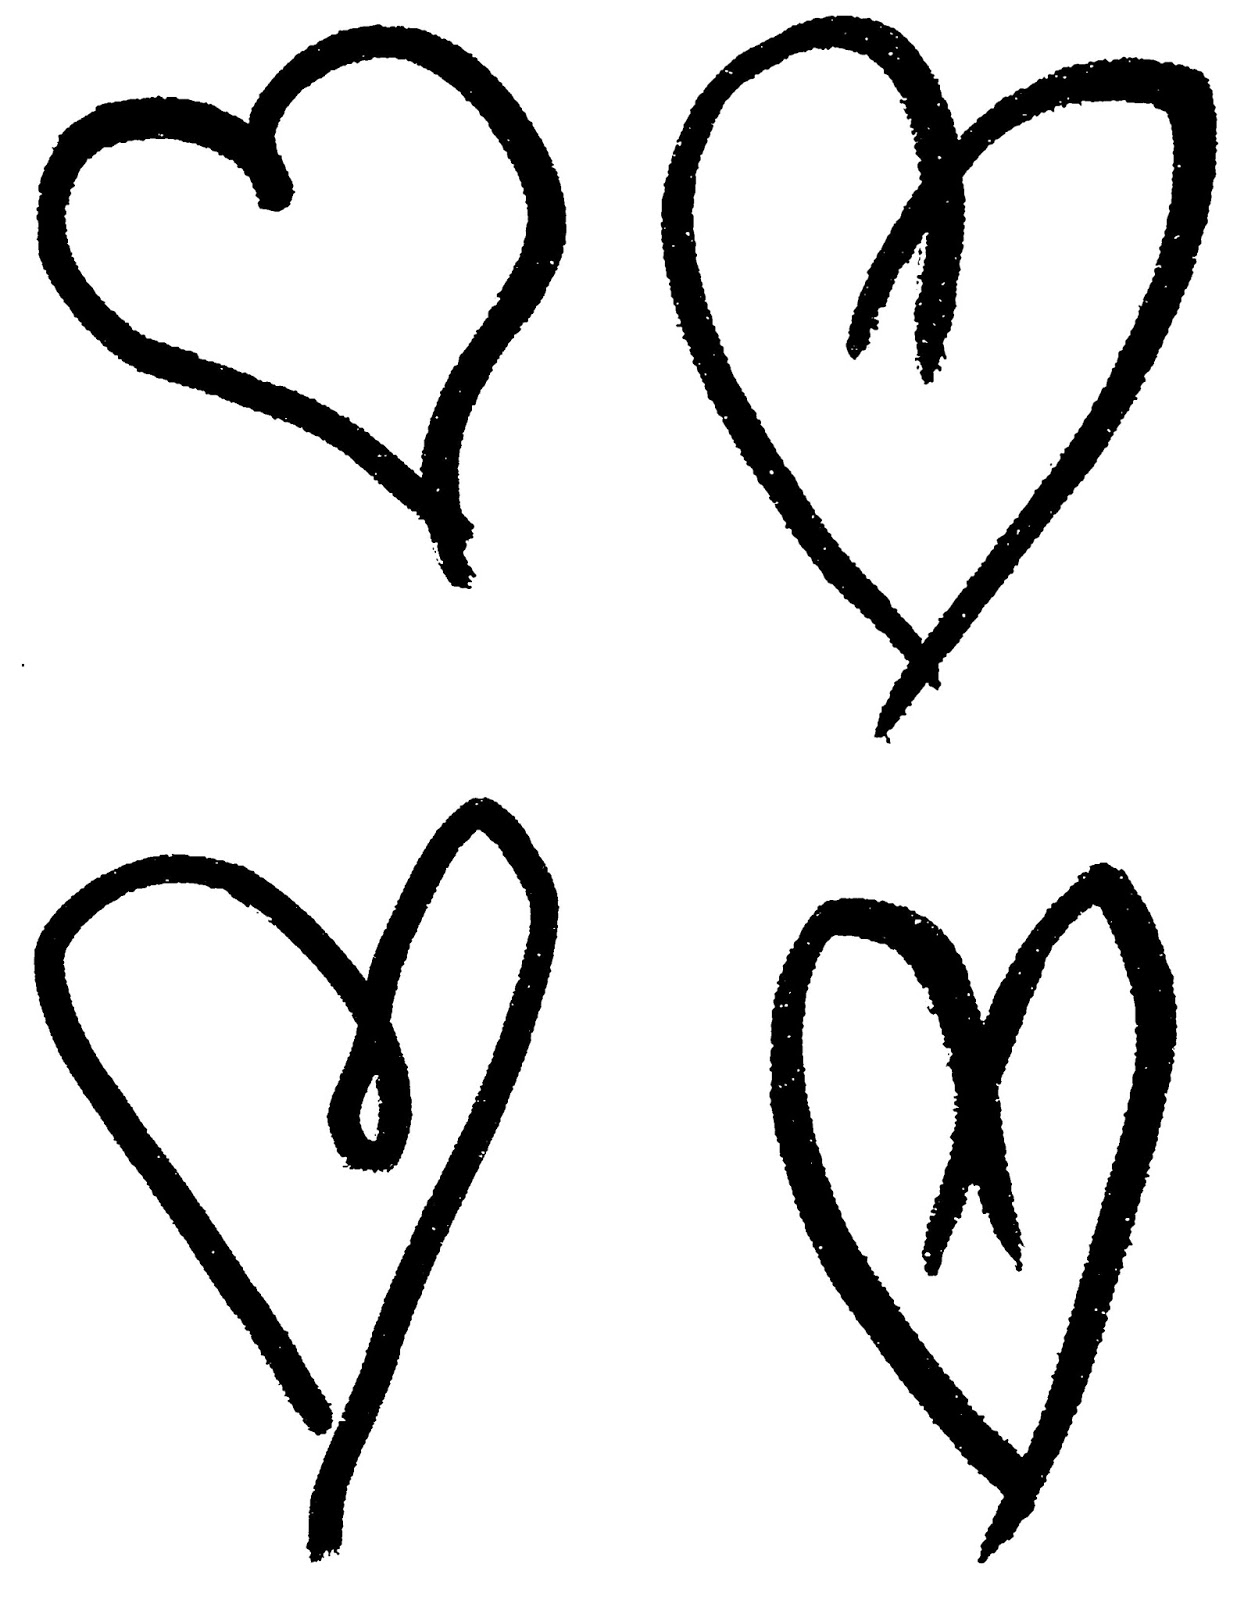 Digital stamp design printable. Drawing clipart heart graphic black and white